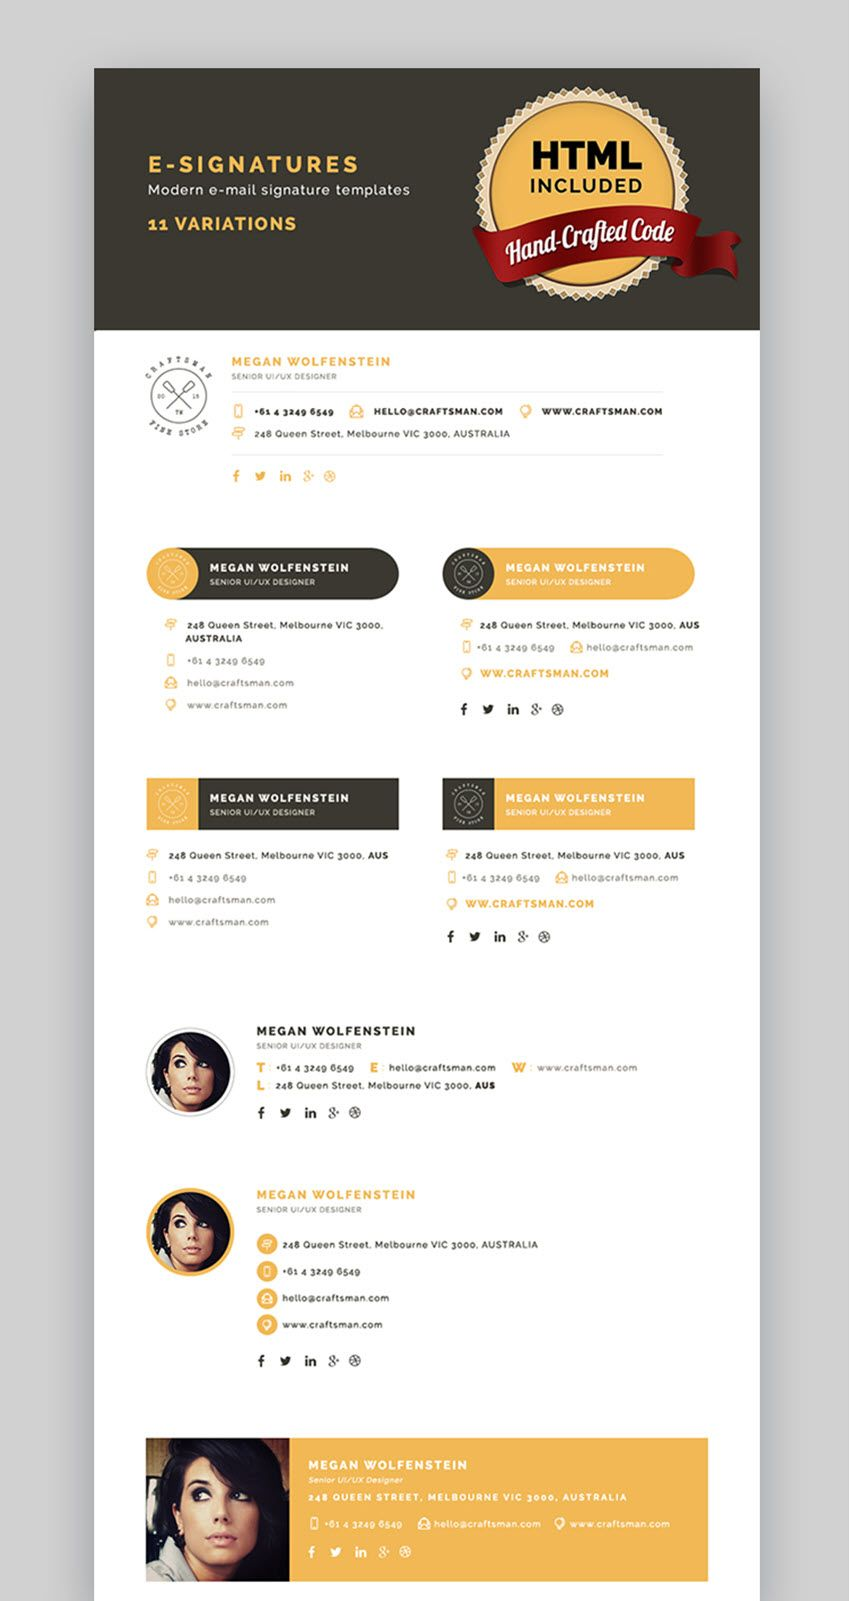 How To Add A Professional Outlook Email Signature Quickly Email Signature Design Outlook Email Signature Email Signatures